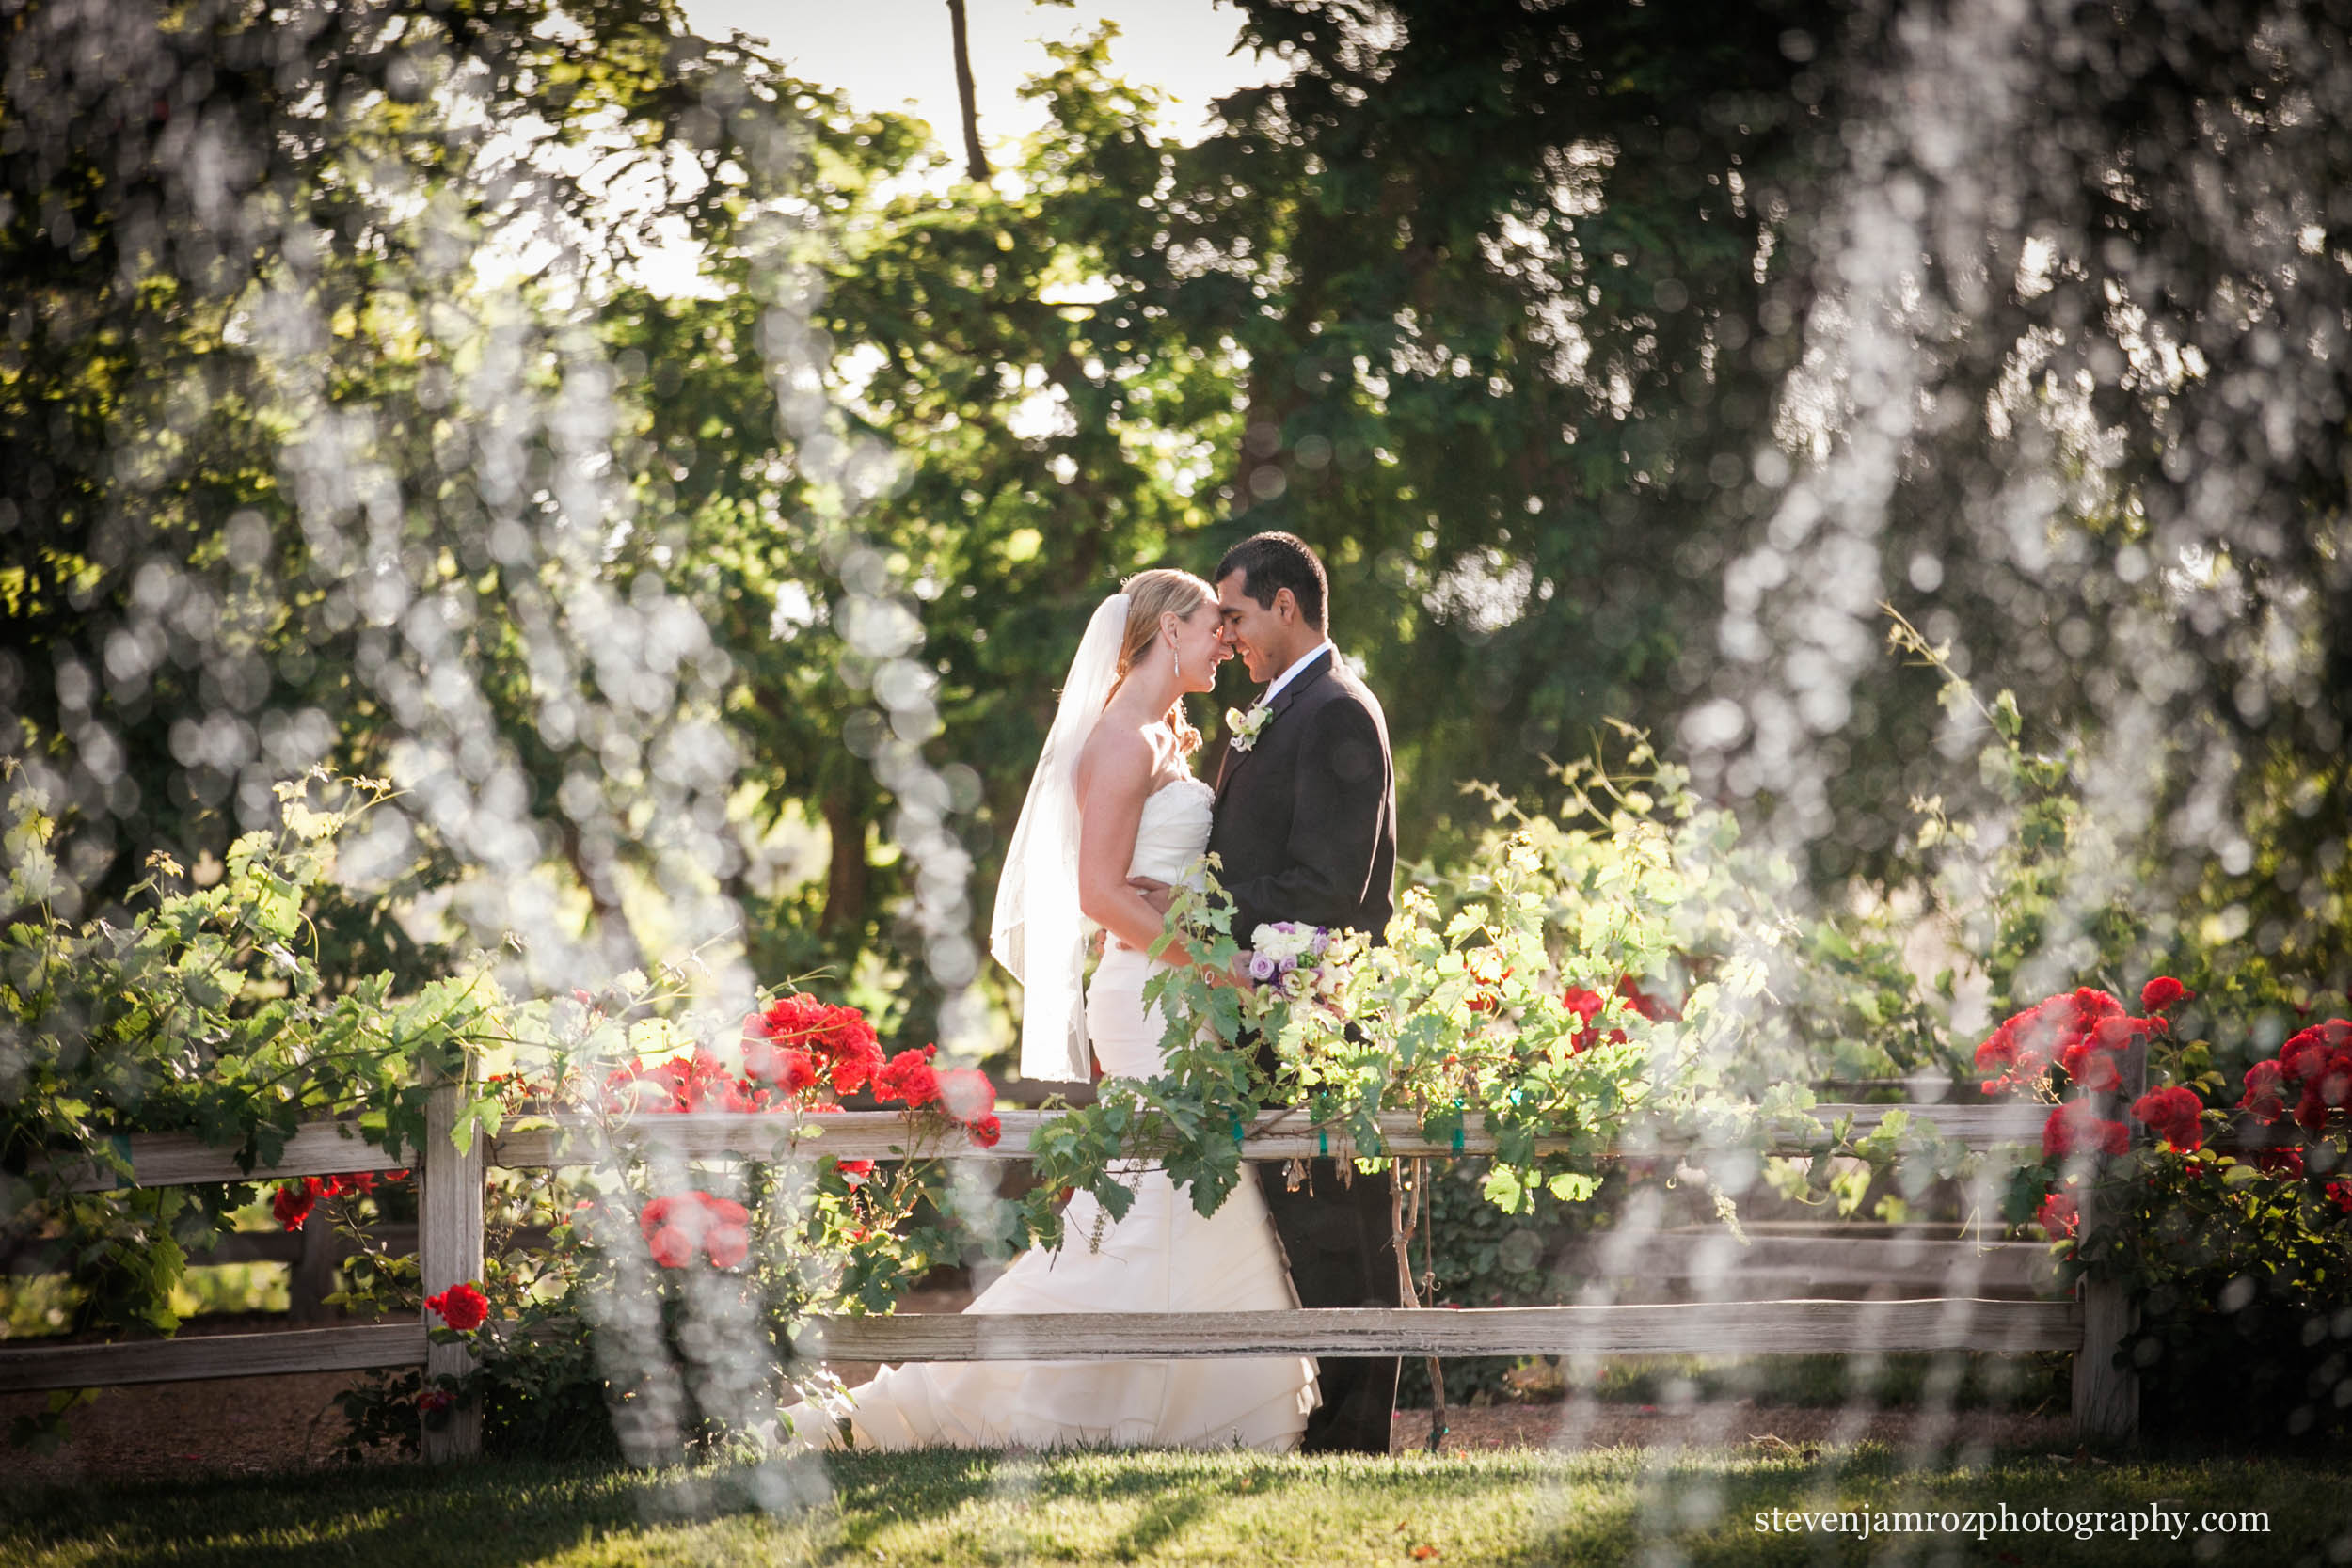 fountain-outdoors-raleigh-wedding-steven-jamroz-photography-0235.jpg